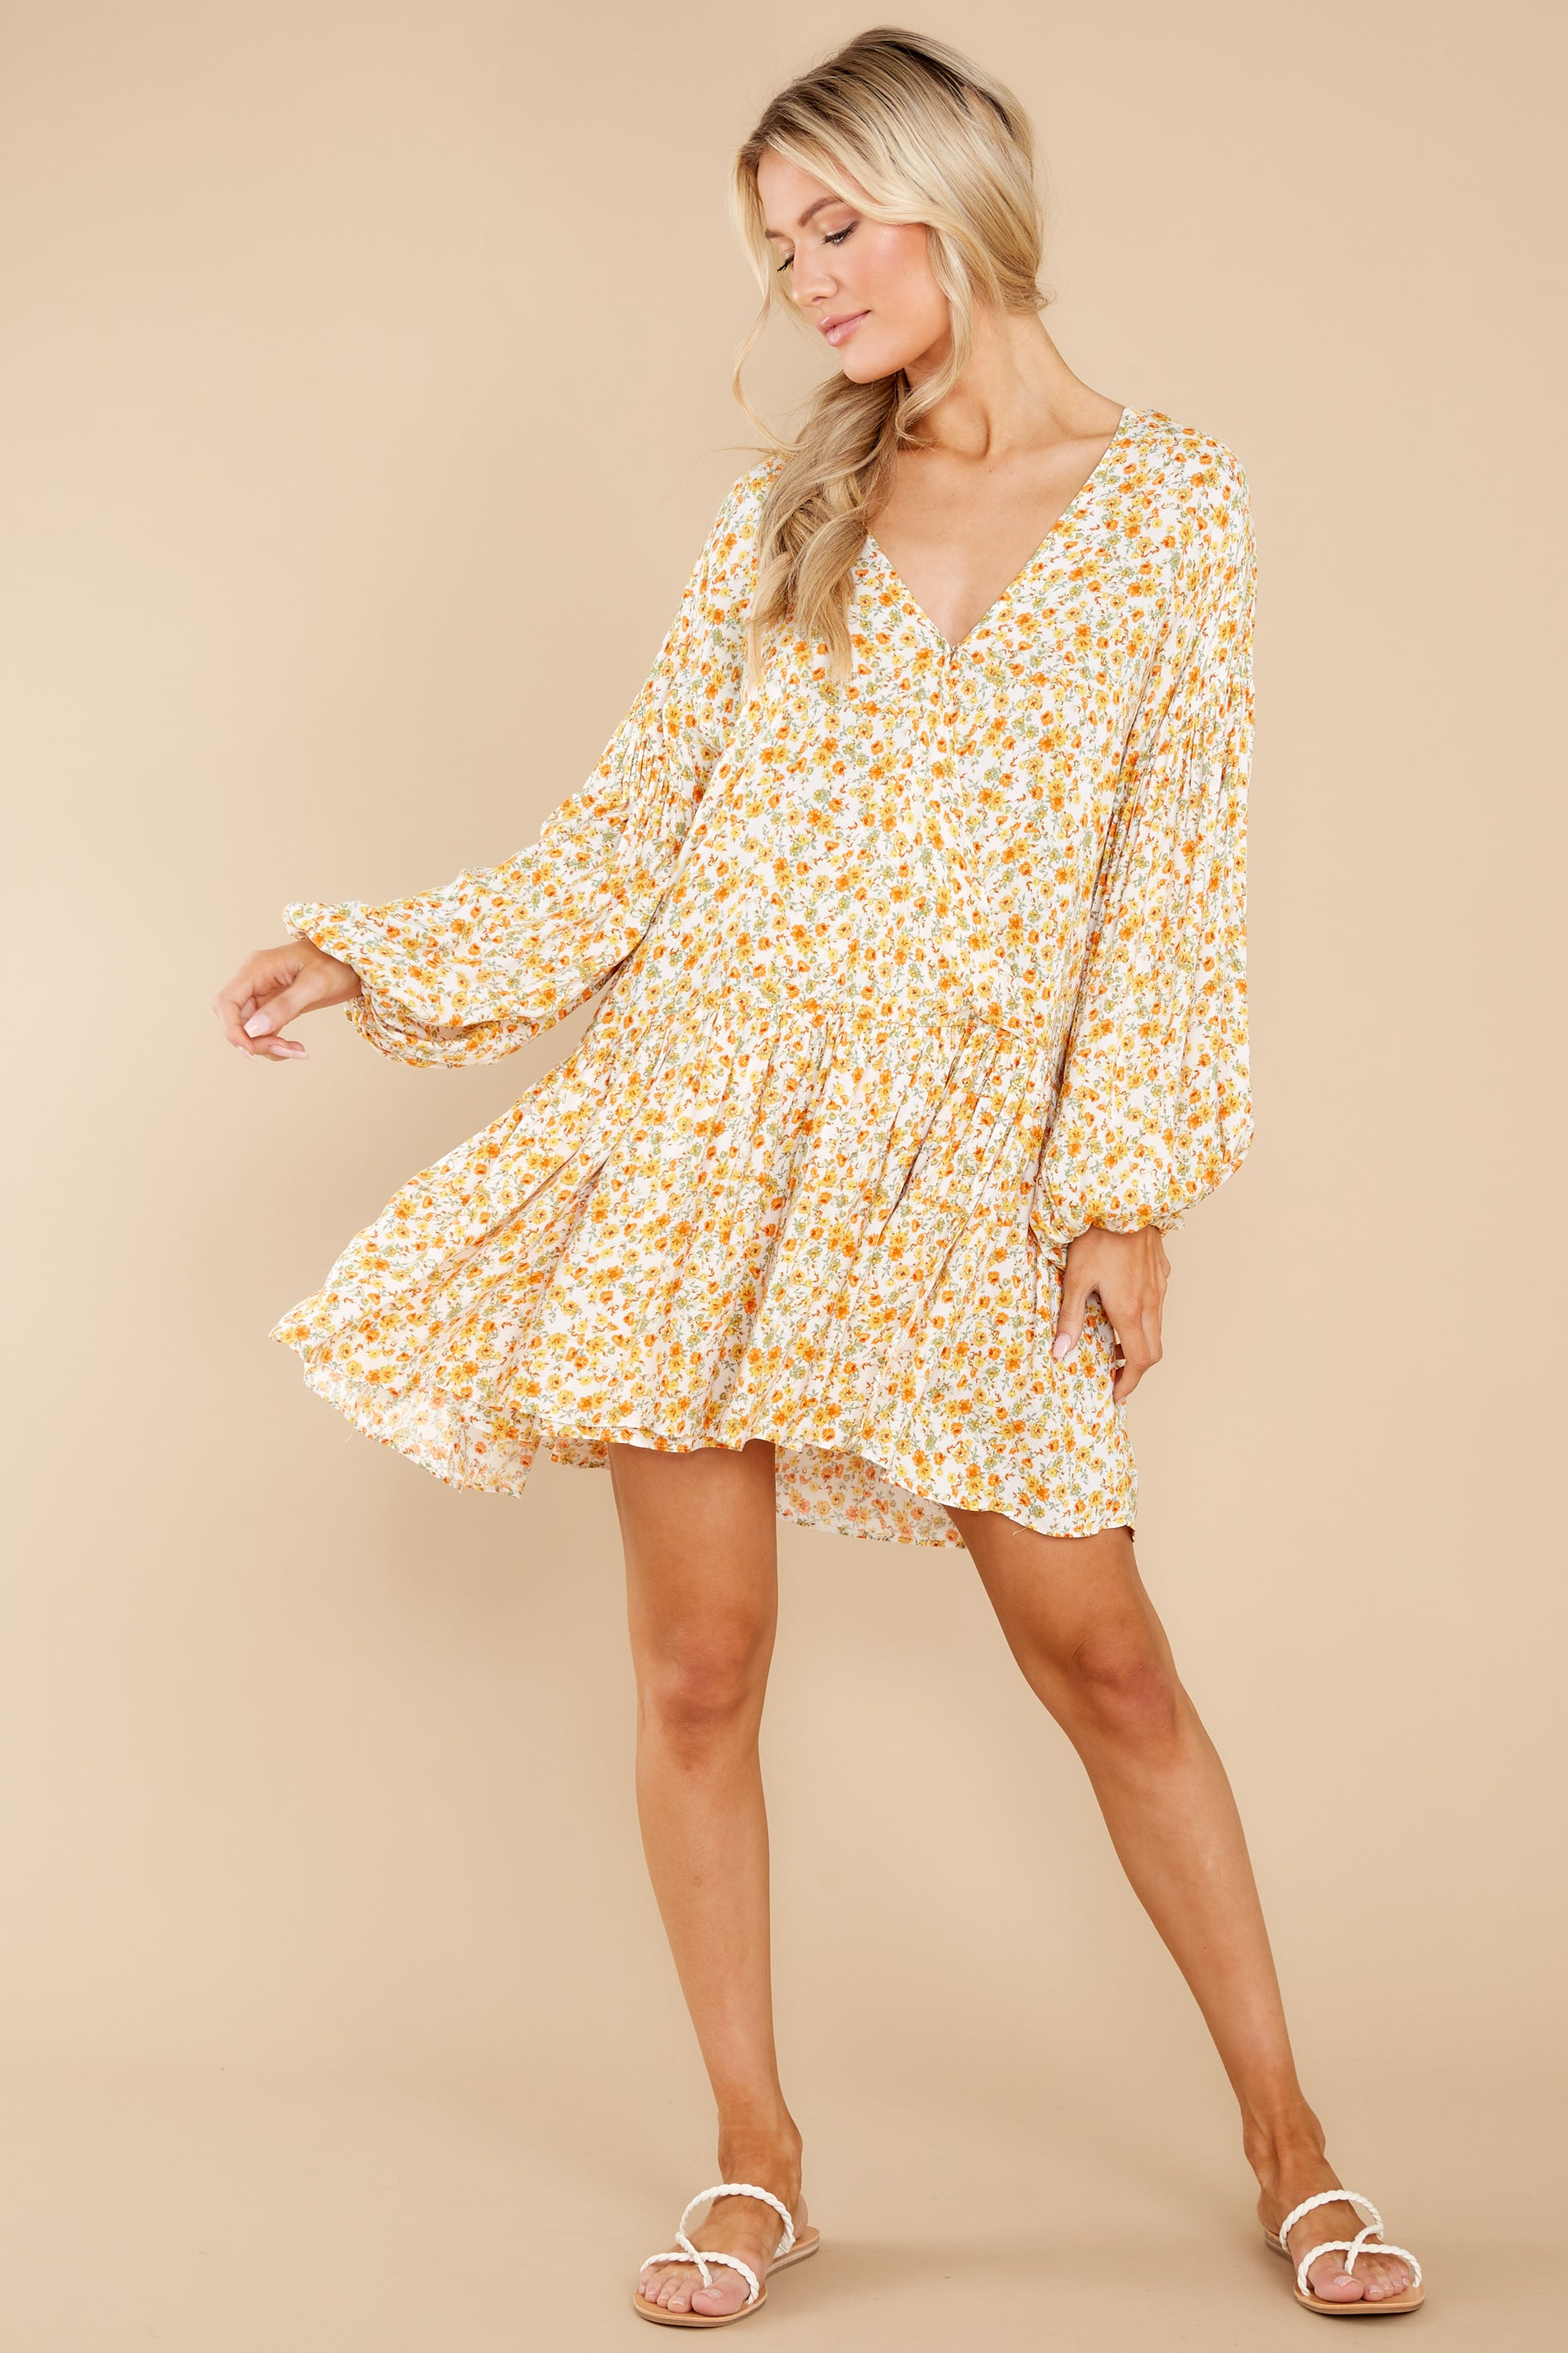 2 Far Away Places Yellow And Orange Floral Print Dress at reddress.com